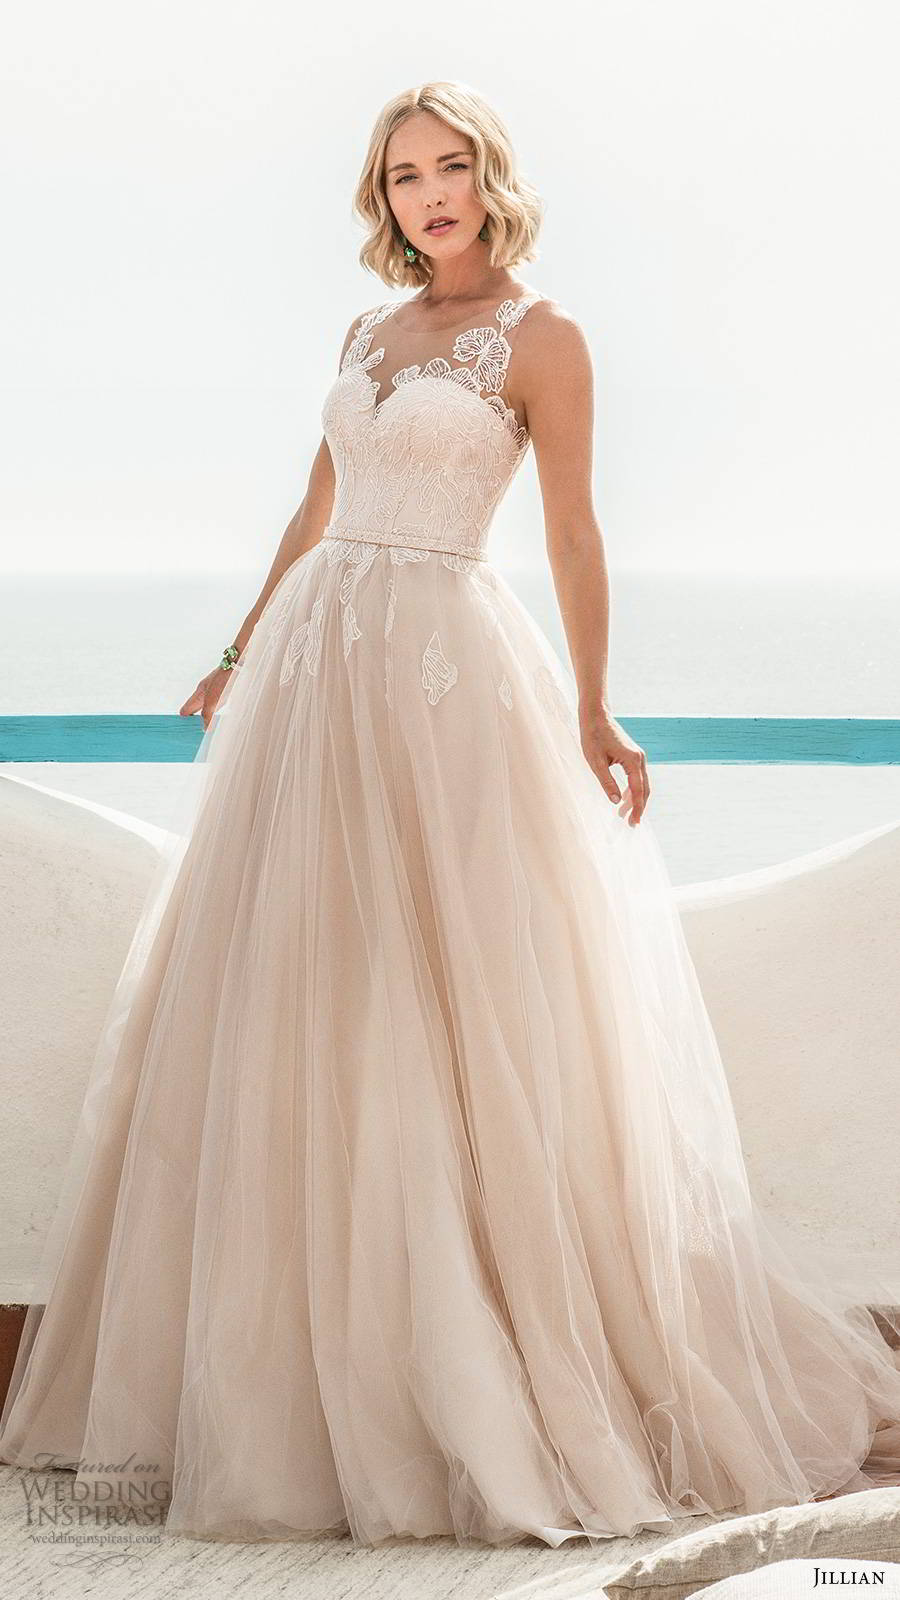 jillian sposa 2020 bridal sleeveless illusion straps sweetheart neckline embellished bodice romantic a line ball gown wedding dress chapel train blush color (5) mv